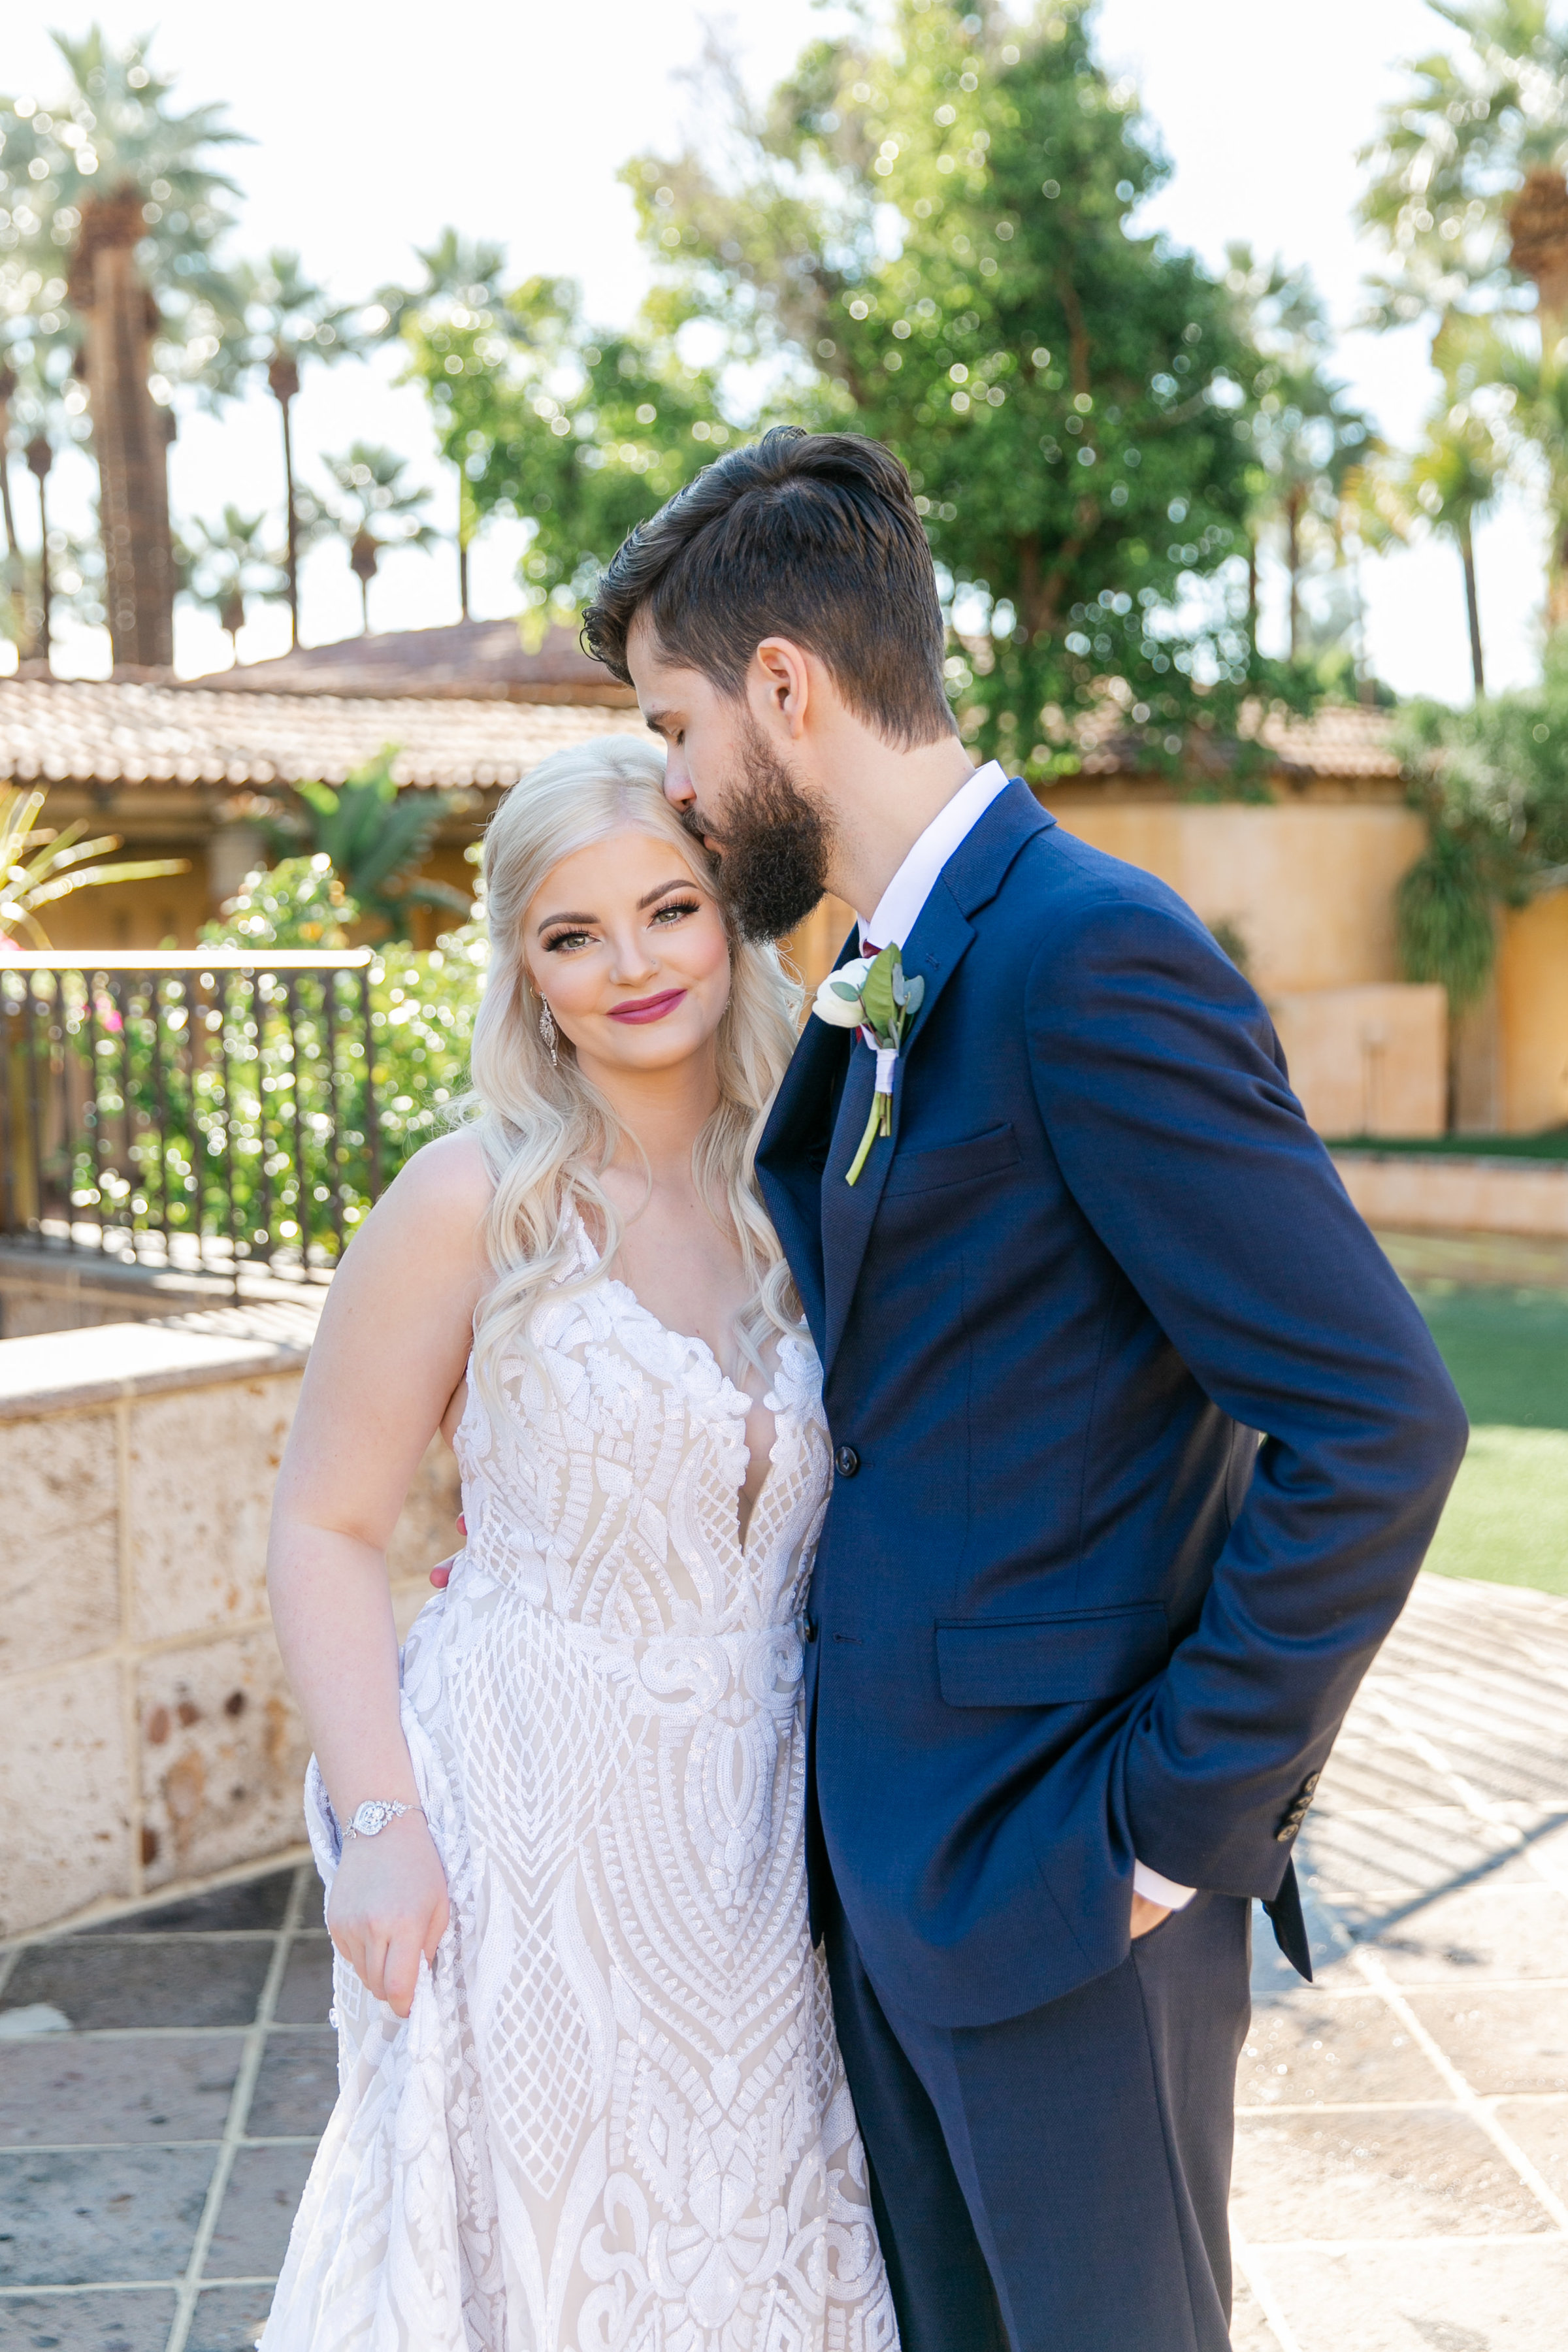 Karlie Colleen Photography - The Royal Palms Wedding - Some Like It Classic - Alex & Sam-125